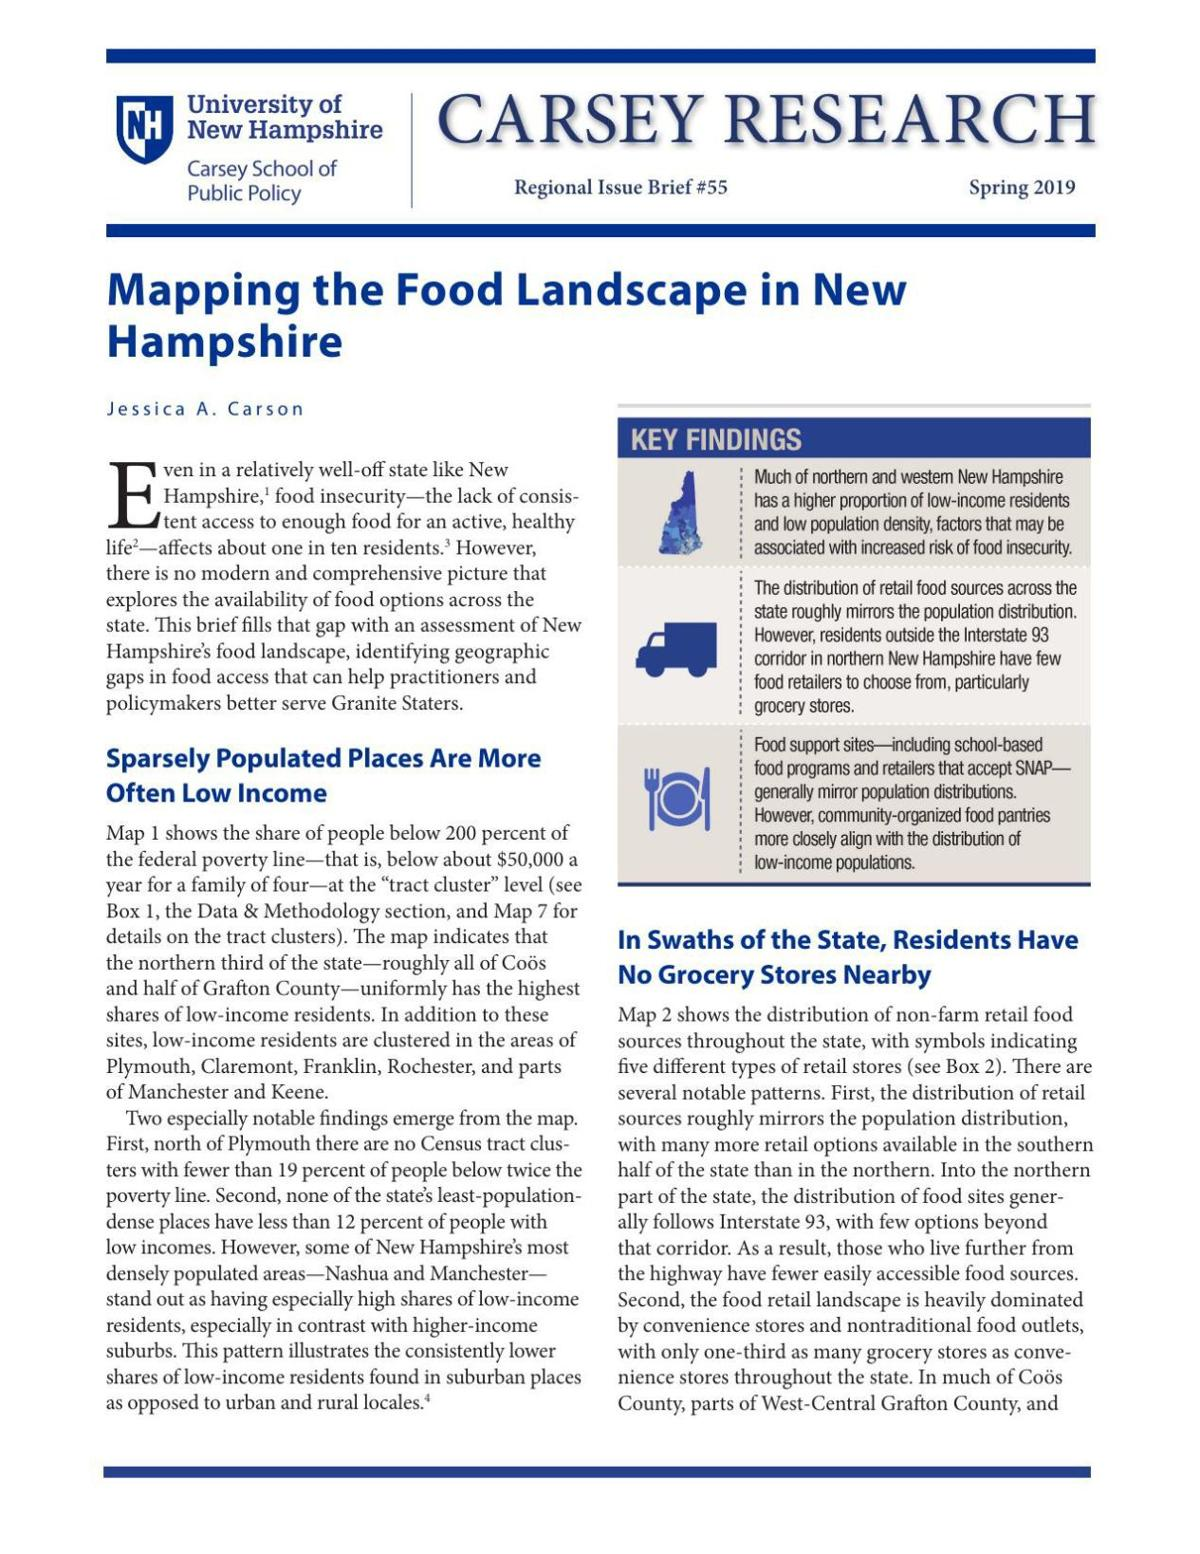 Mapping the Food Landscape in New Hampshire